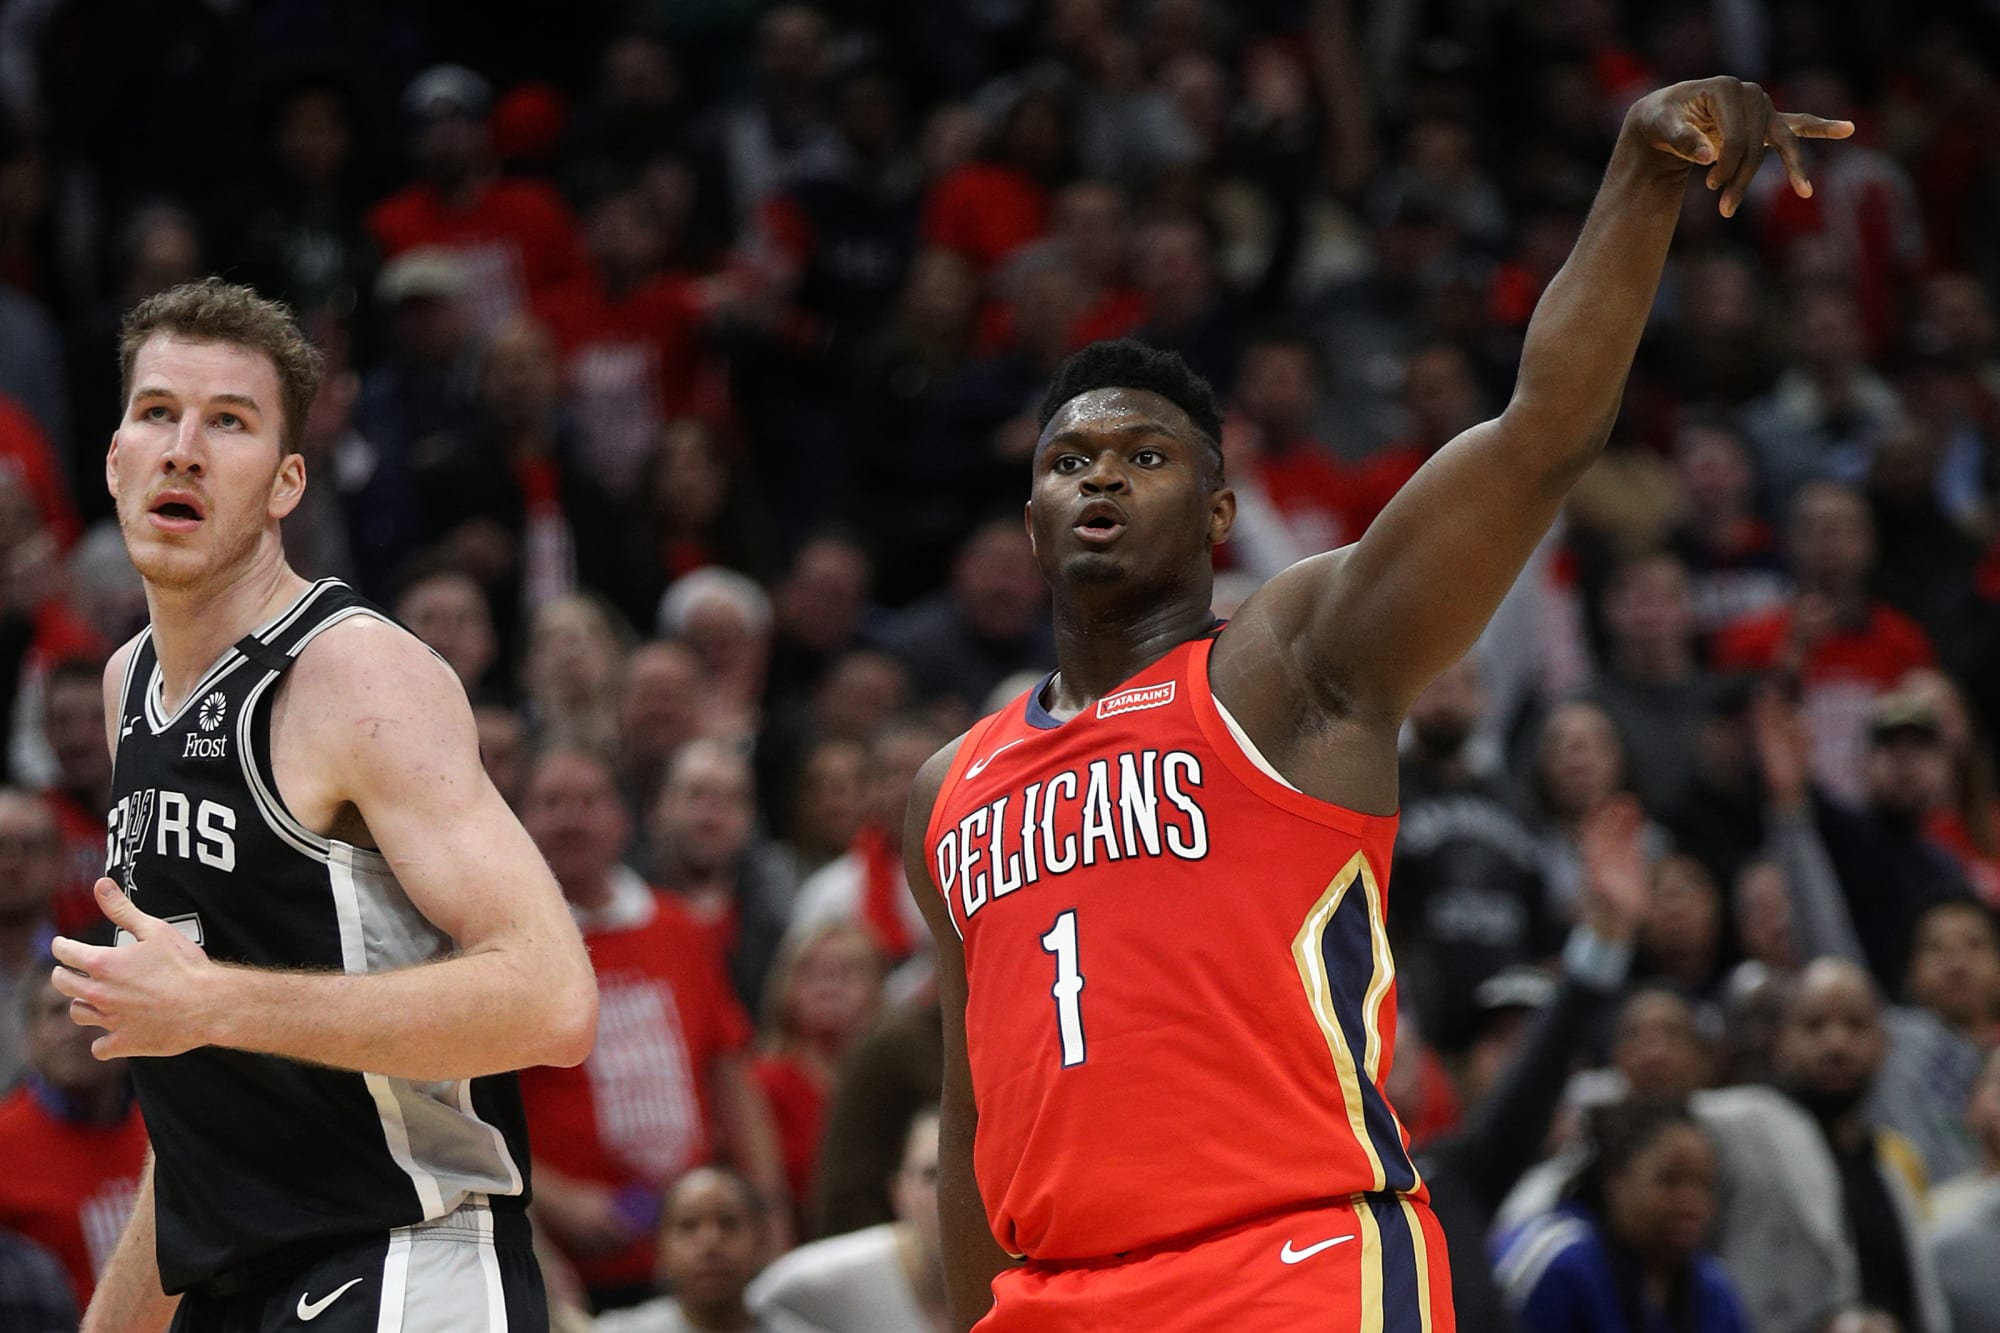 New Orleans Pelicans: Debut of Zion Williamson, Face of the Franchise